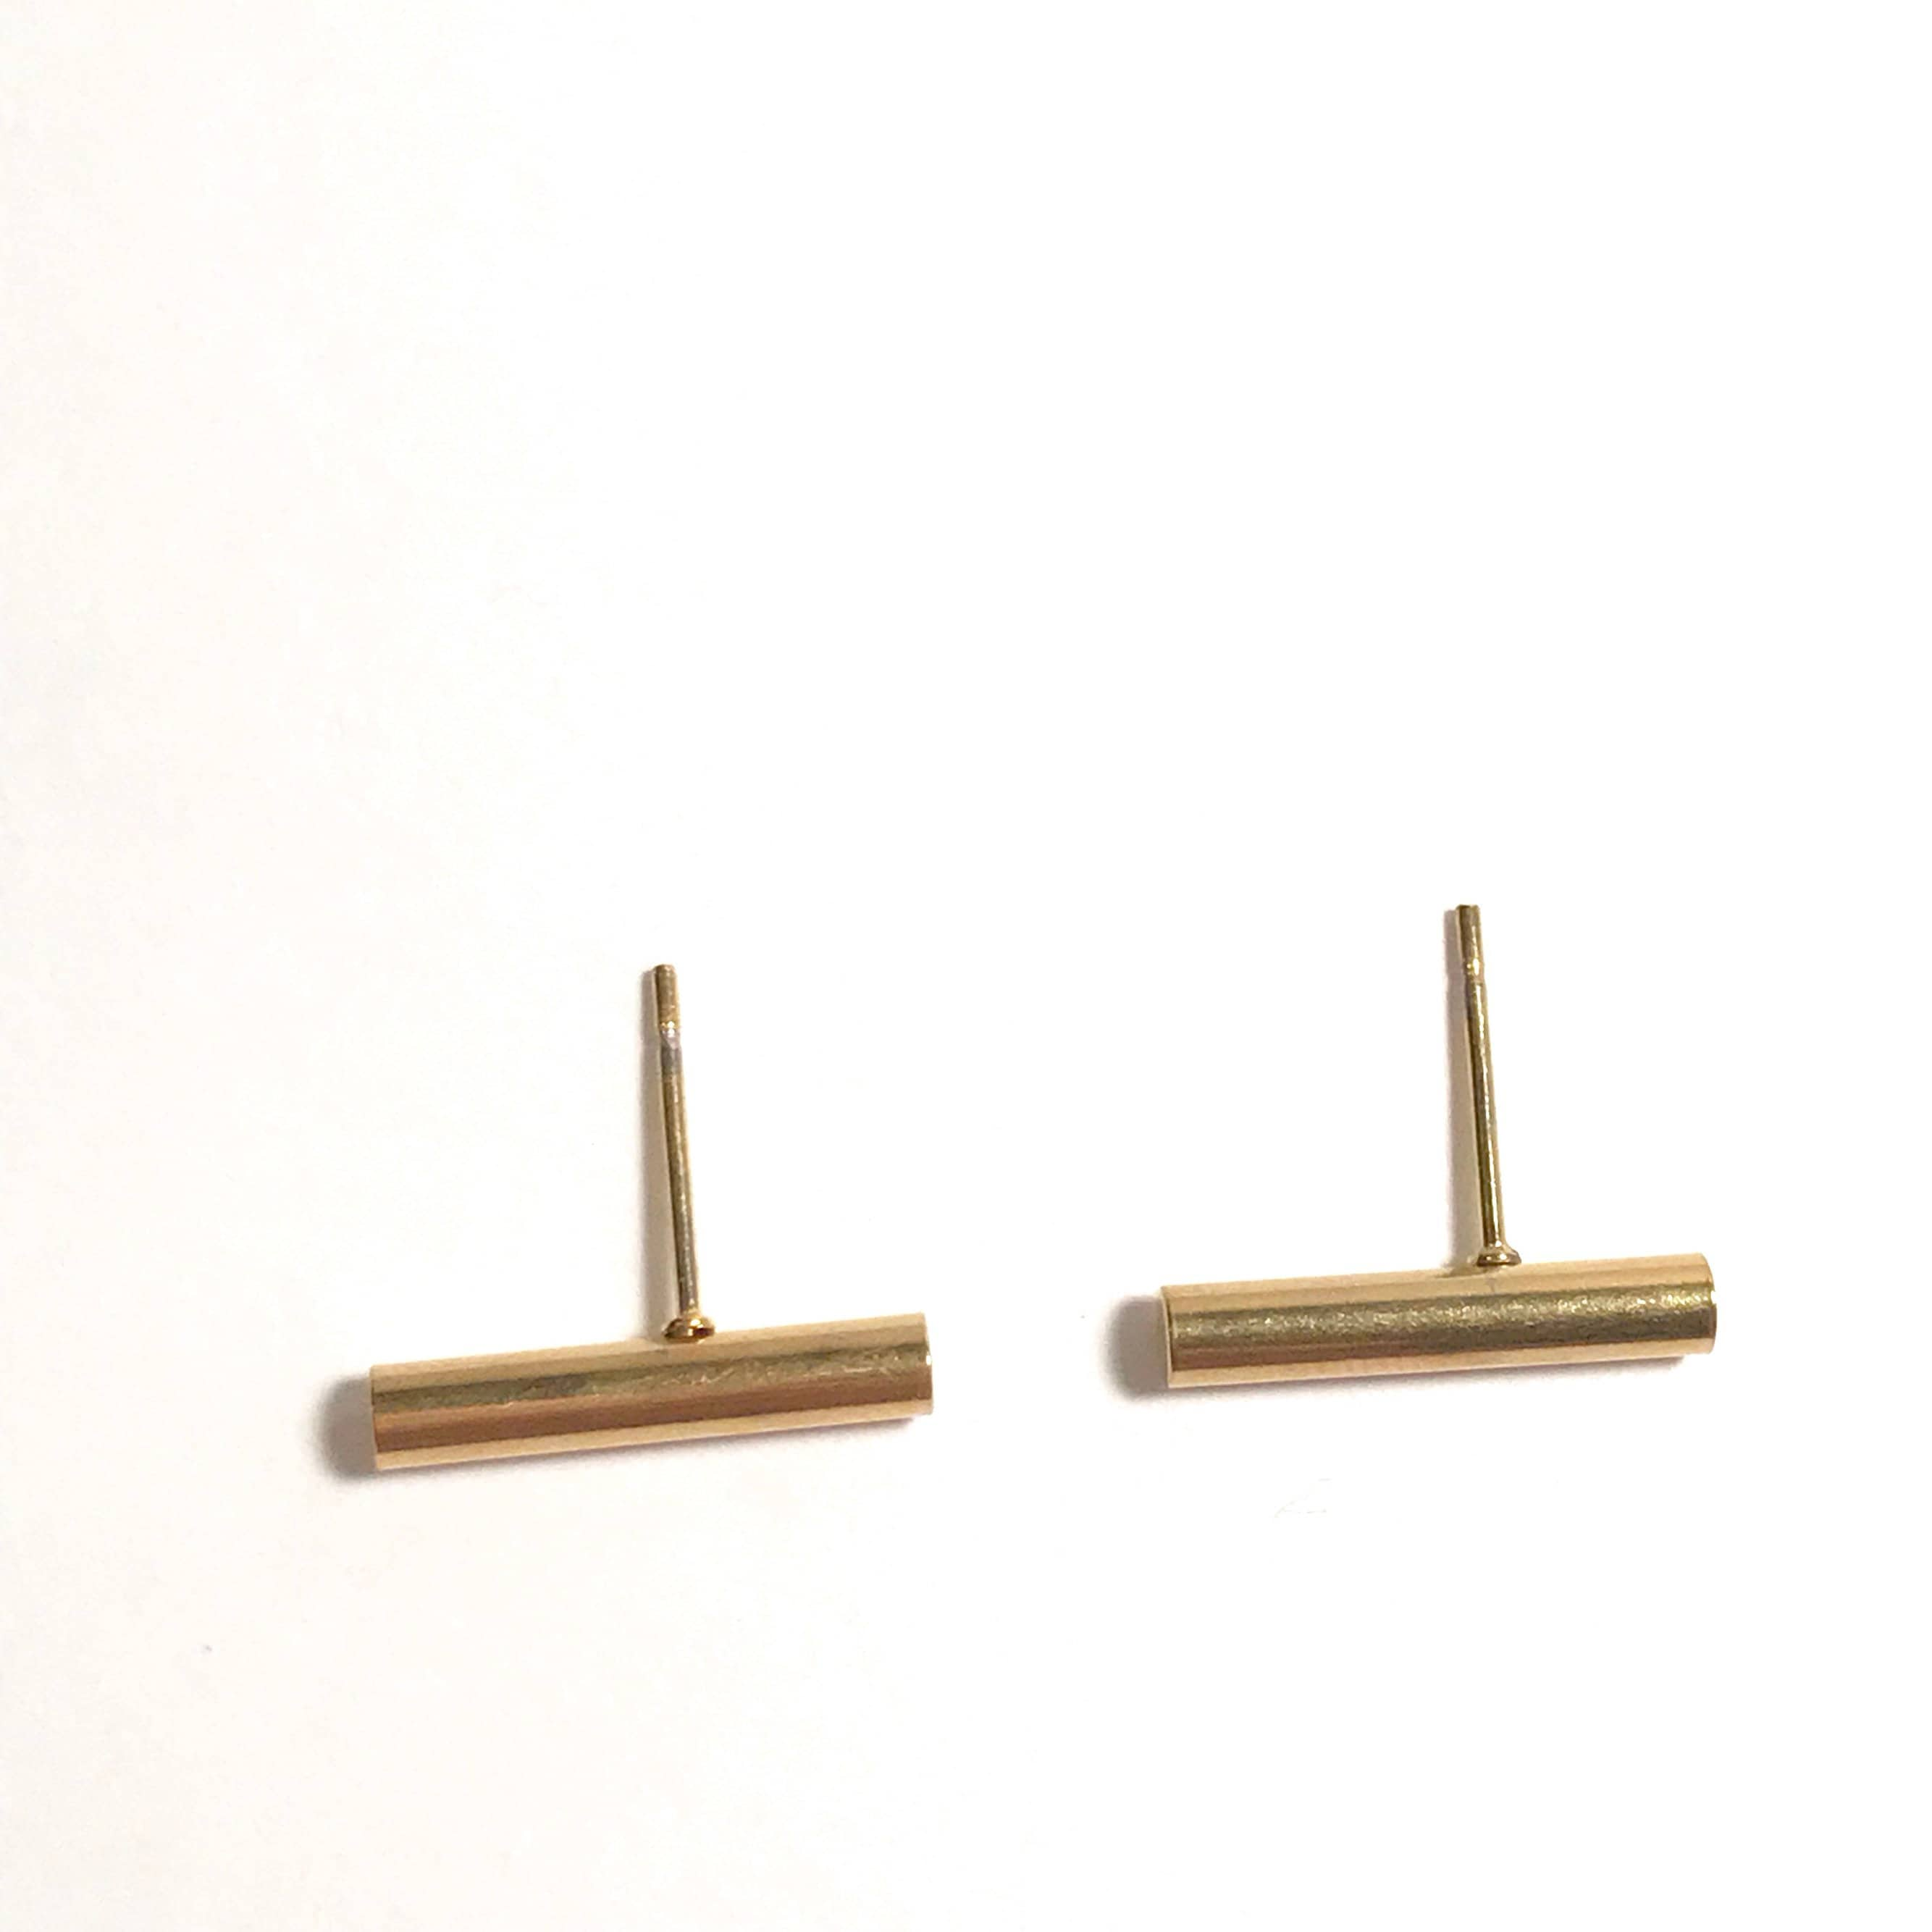 in simple edgy vrai products line ecomm solid oro earrings studs yellow and modelled gold stud